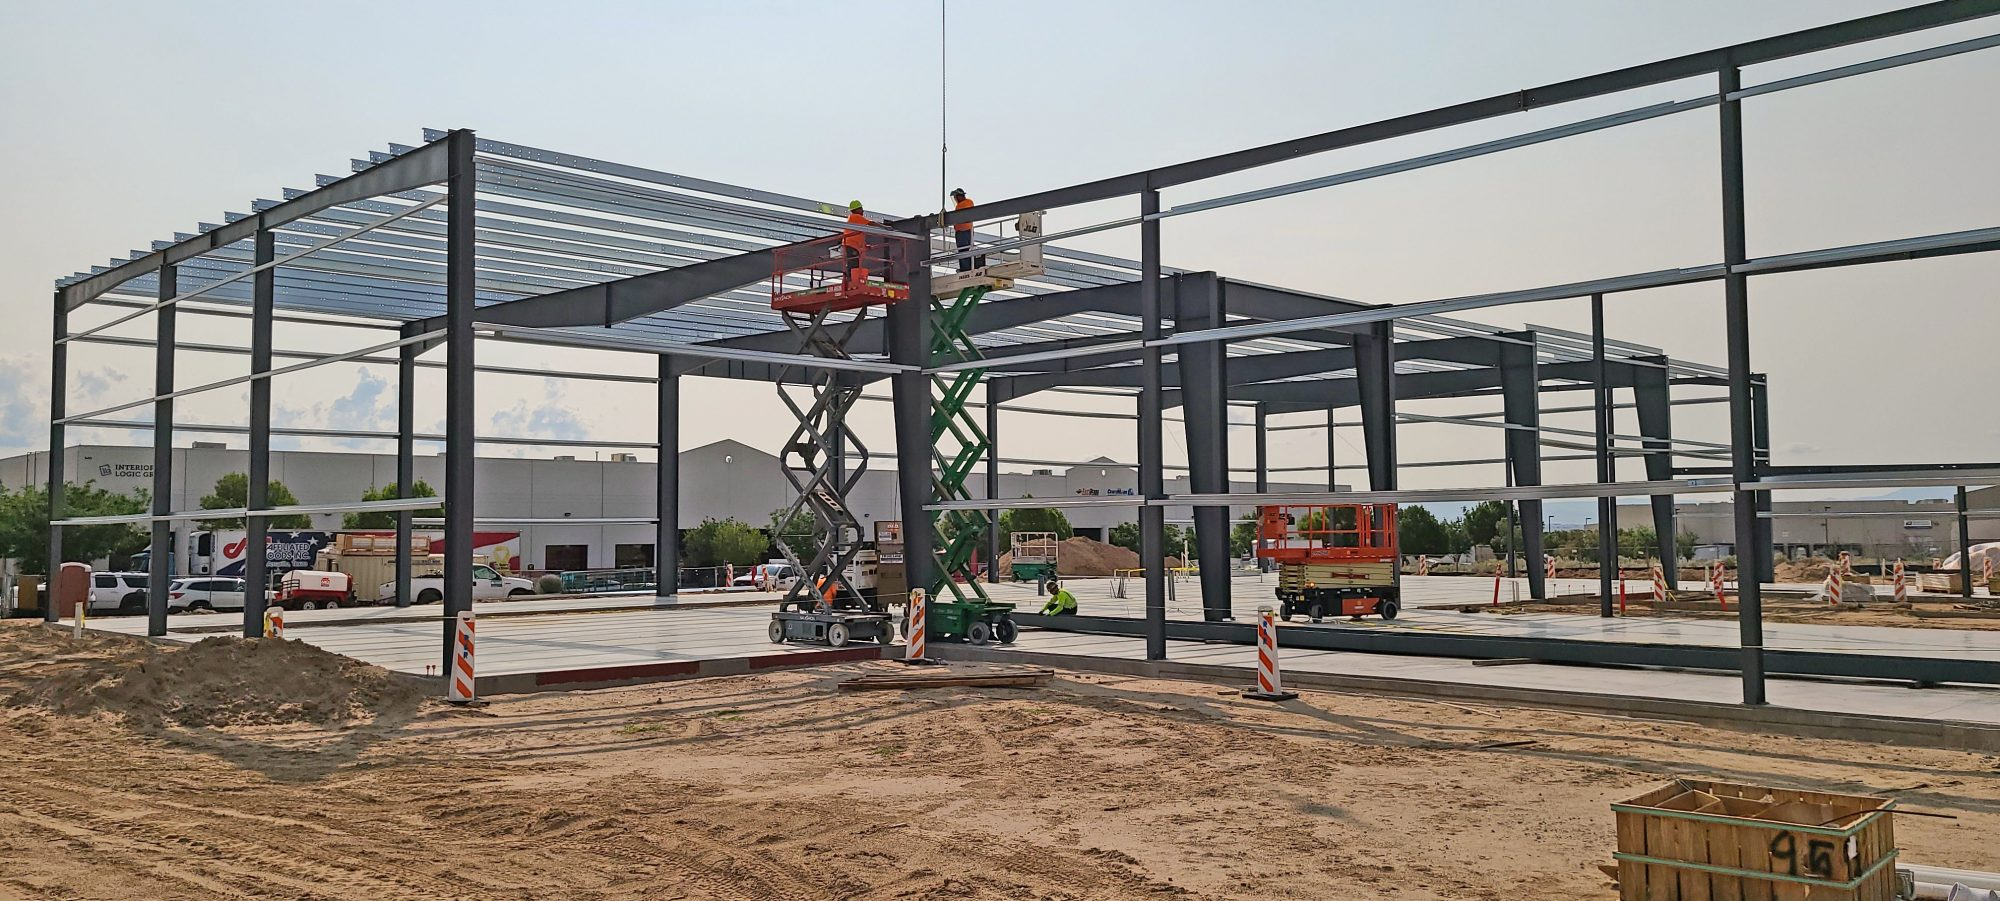 Construction of Quality Fruit and Vegetable Company warehouse/office.